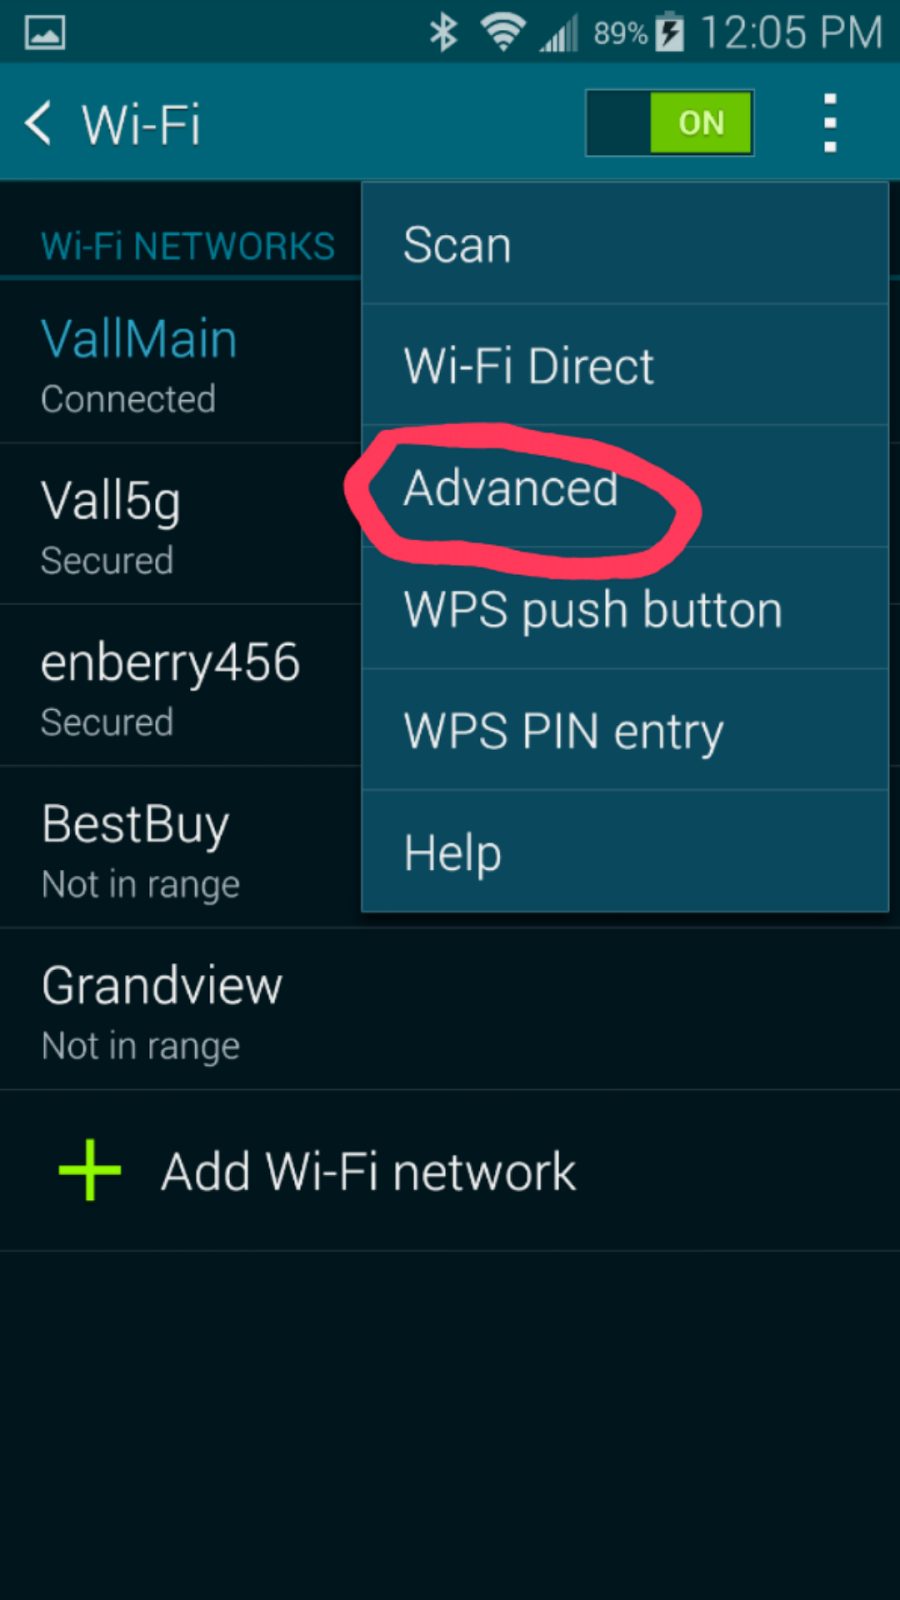 How can I find out the IP address of the HP LasrJet P1102w printer